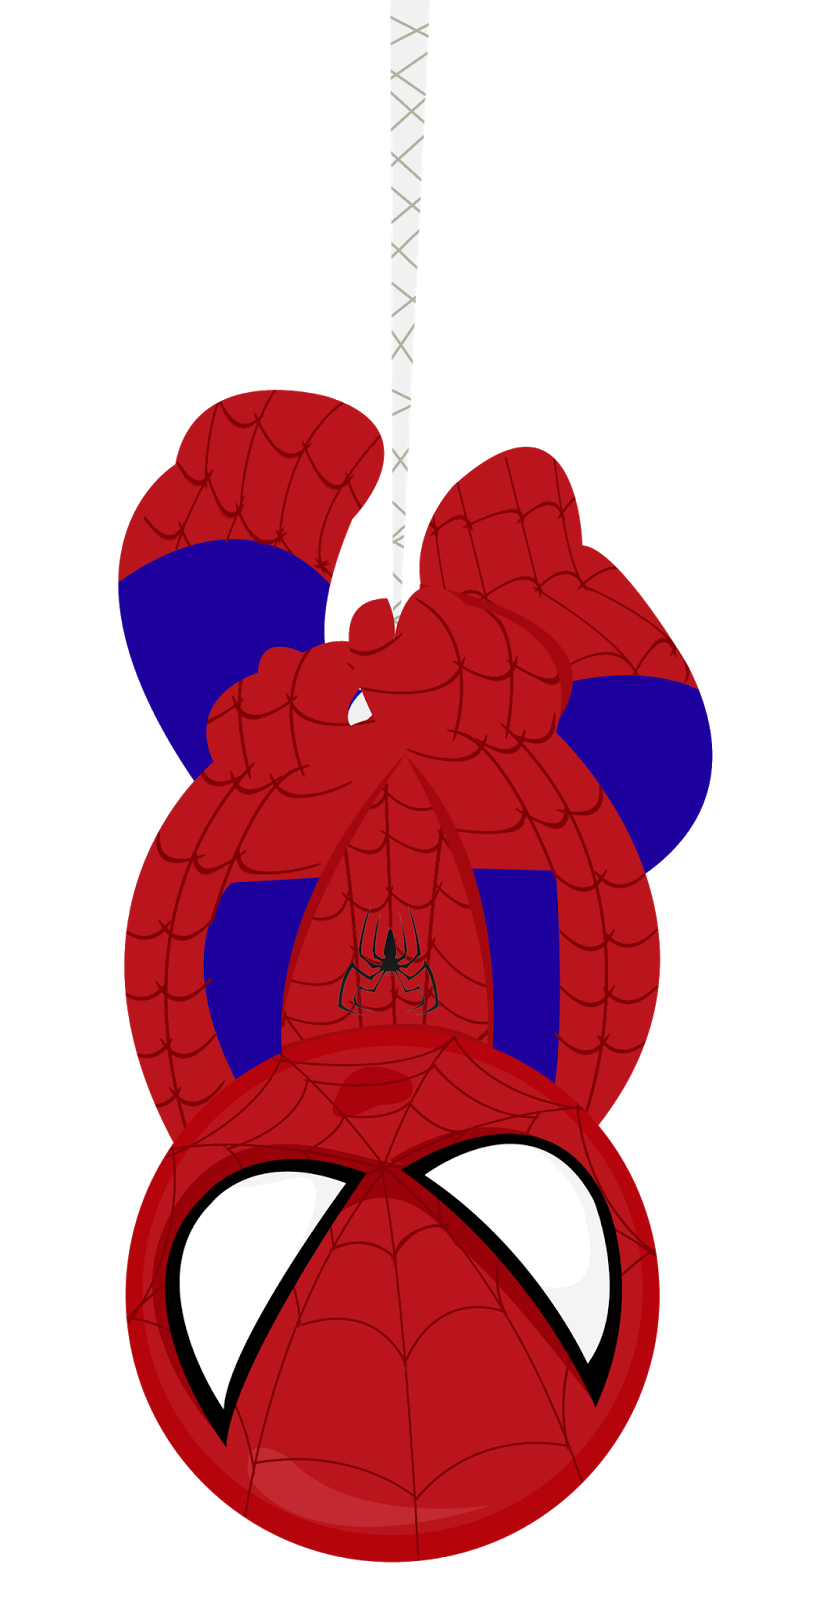 Spiderman baby transparent.